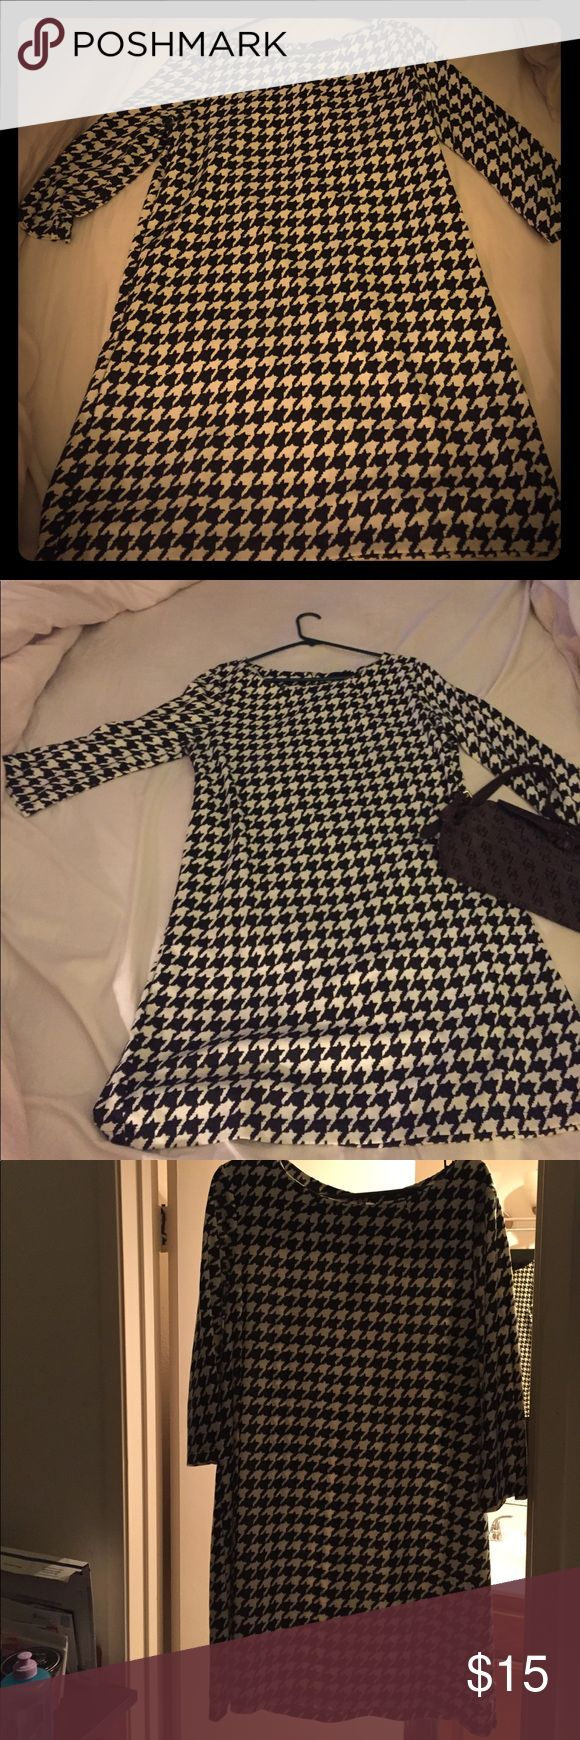 Black and white above the knee dress from H&M Brand new black and white houndstooth designed dress from H&M. Never worn but super cute. Small gold zip up back. Pairs well with heels or boots. H&M Dresses